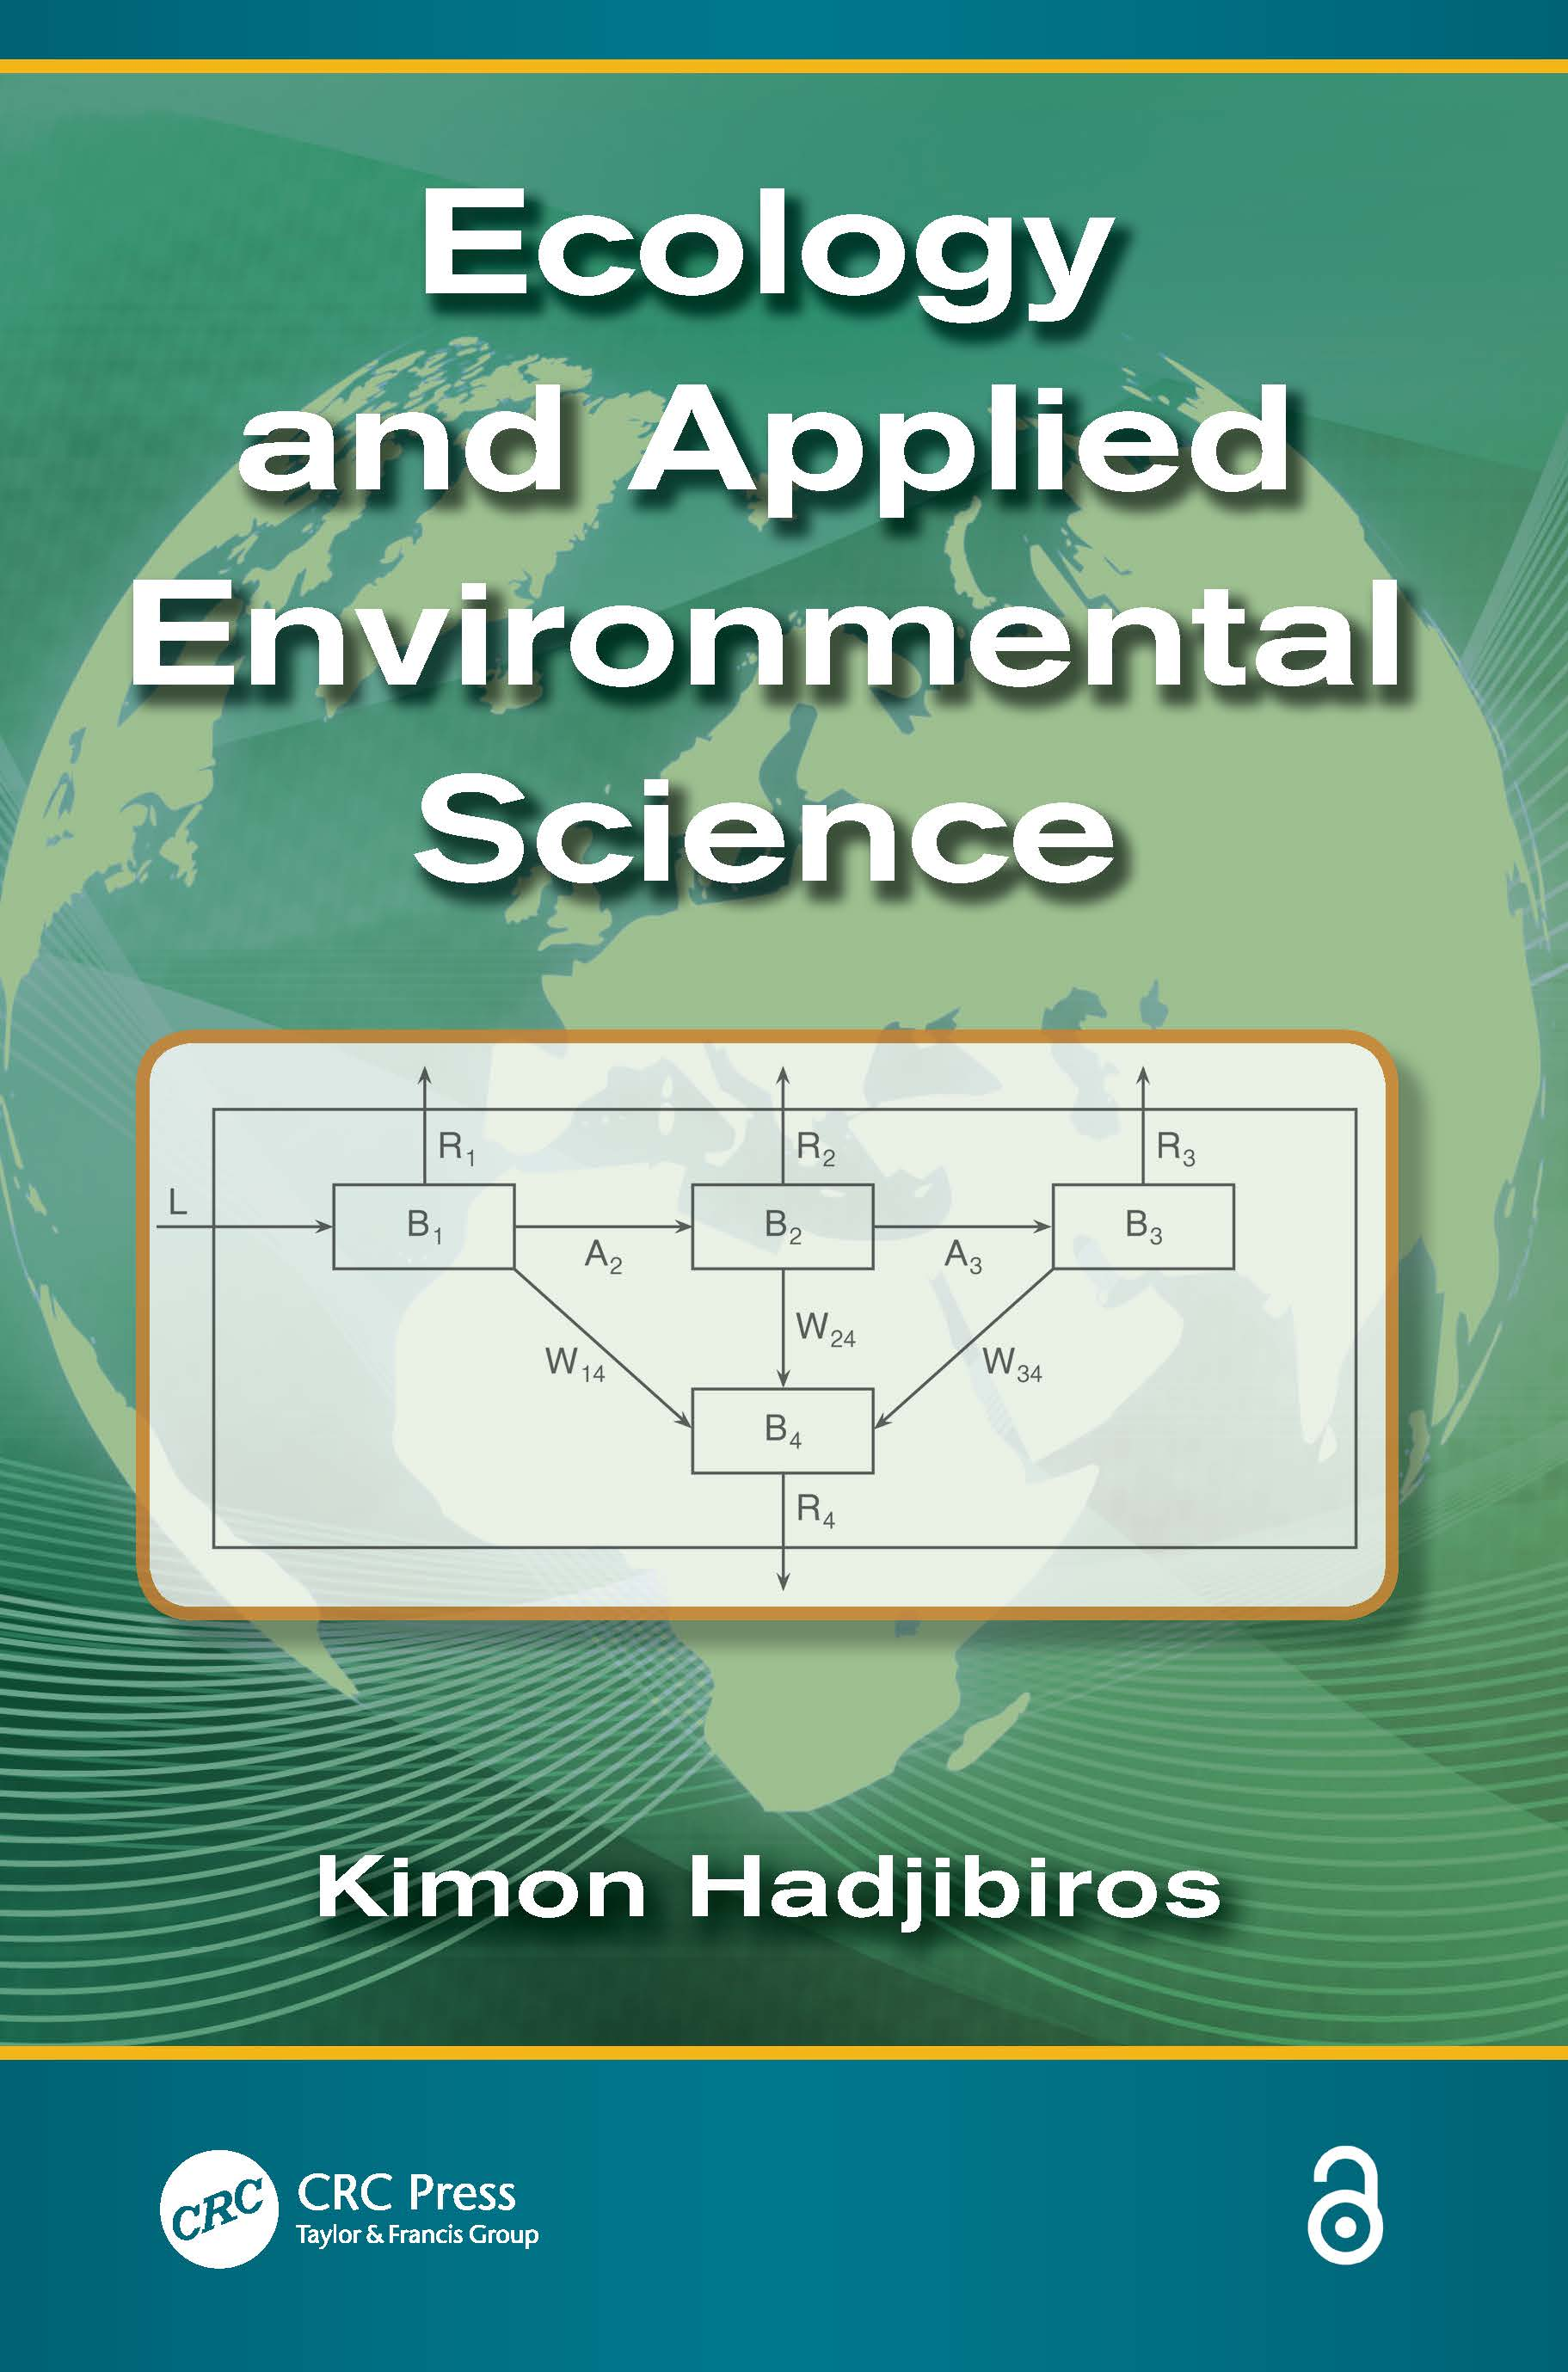 Ecology and Applied Environmental Science